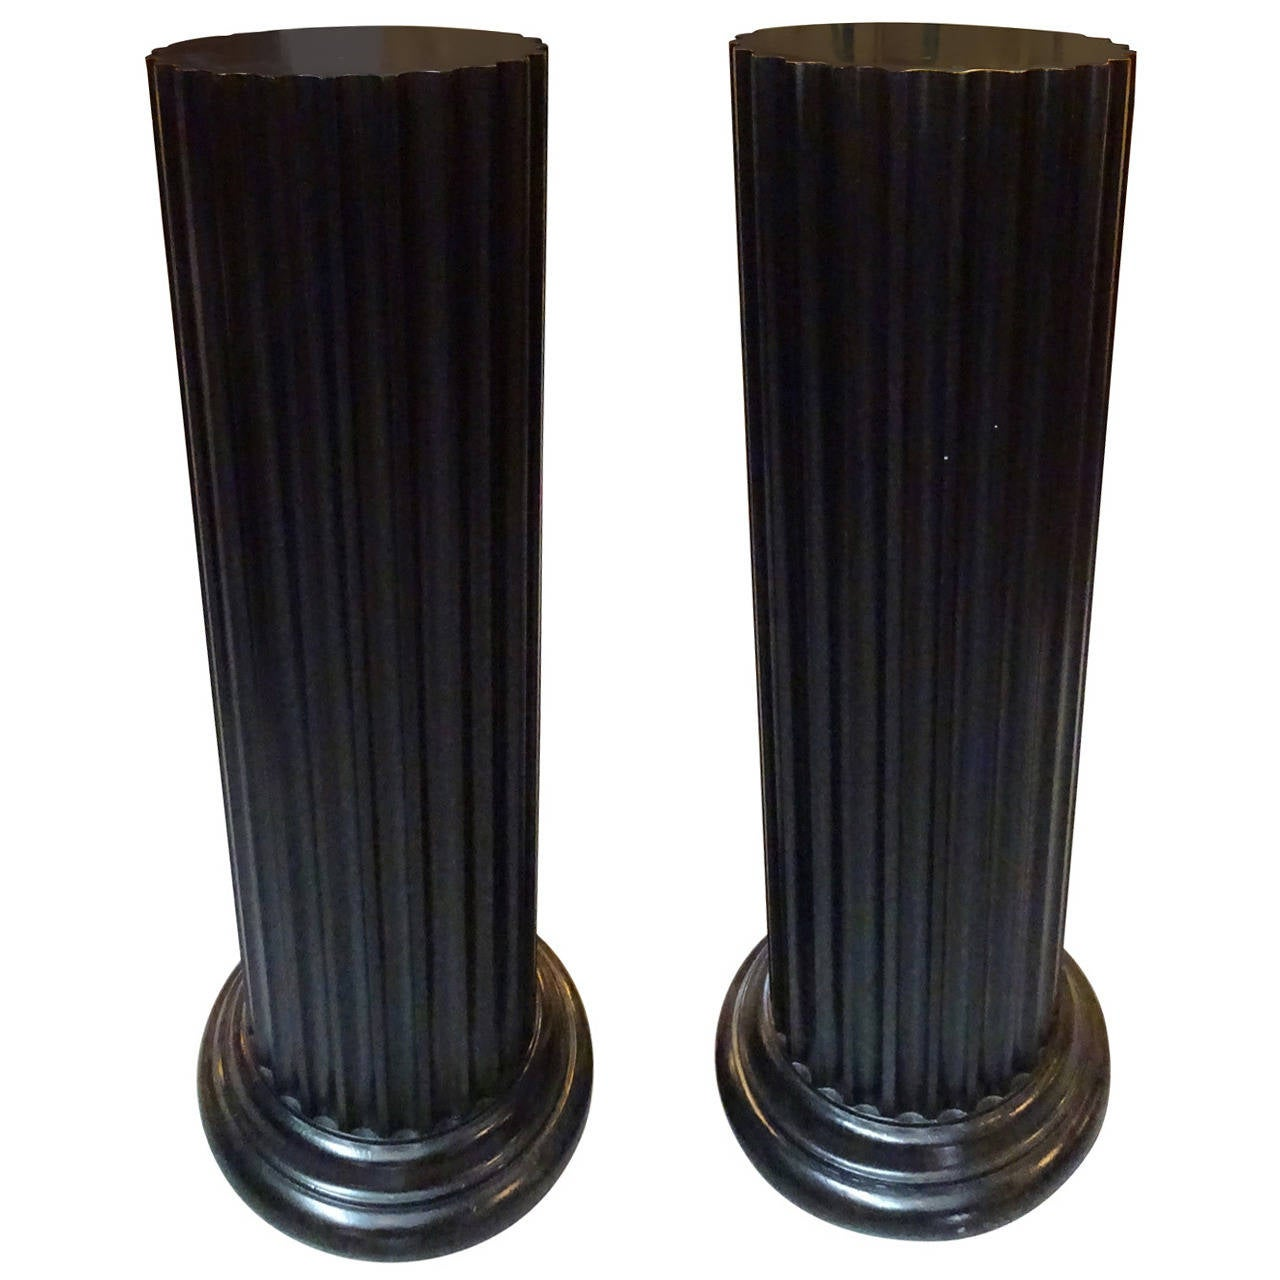 Pair of widdicomb fluted pedestals at 1stdibs for Fluted pedestal base